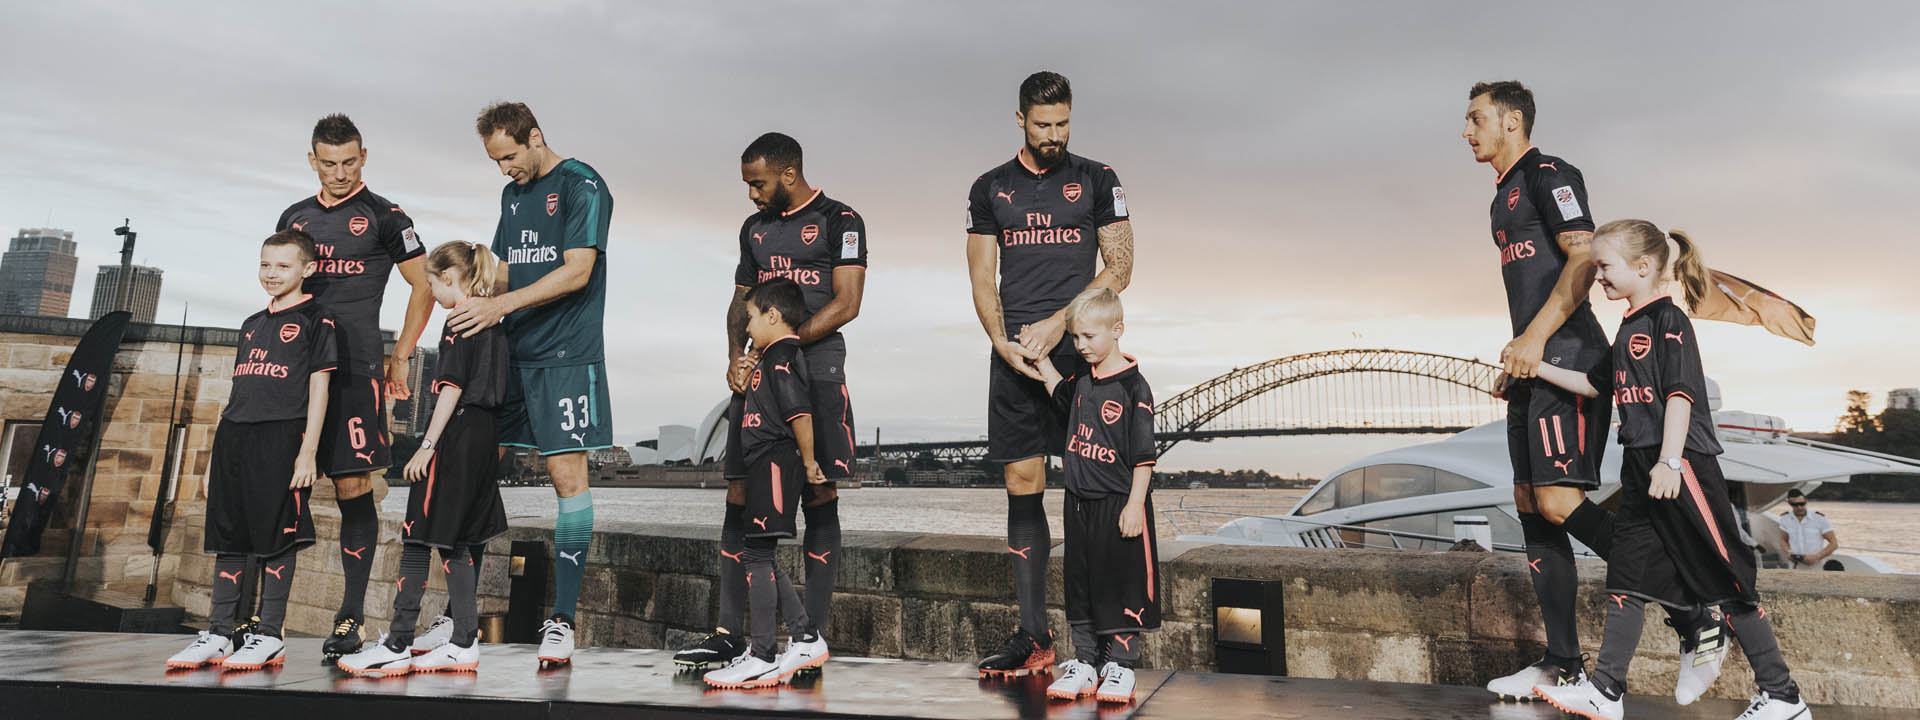 fa6ce019d Arsenal Launch 2017 18 PUMA Third Shirt in Sydney - SoccerBible.